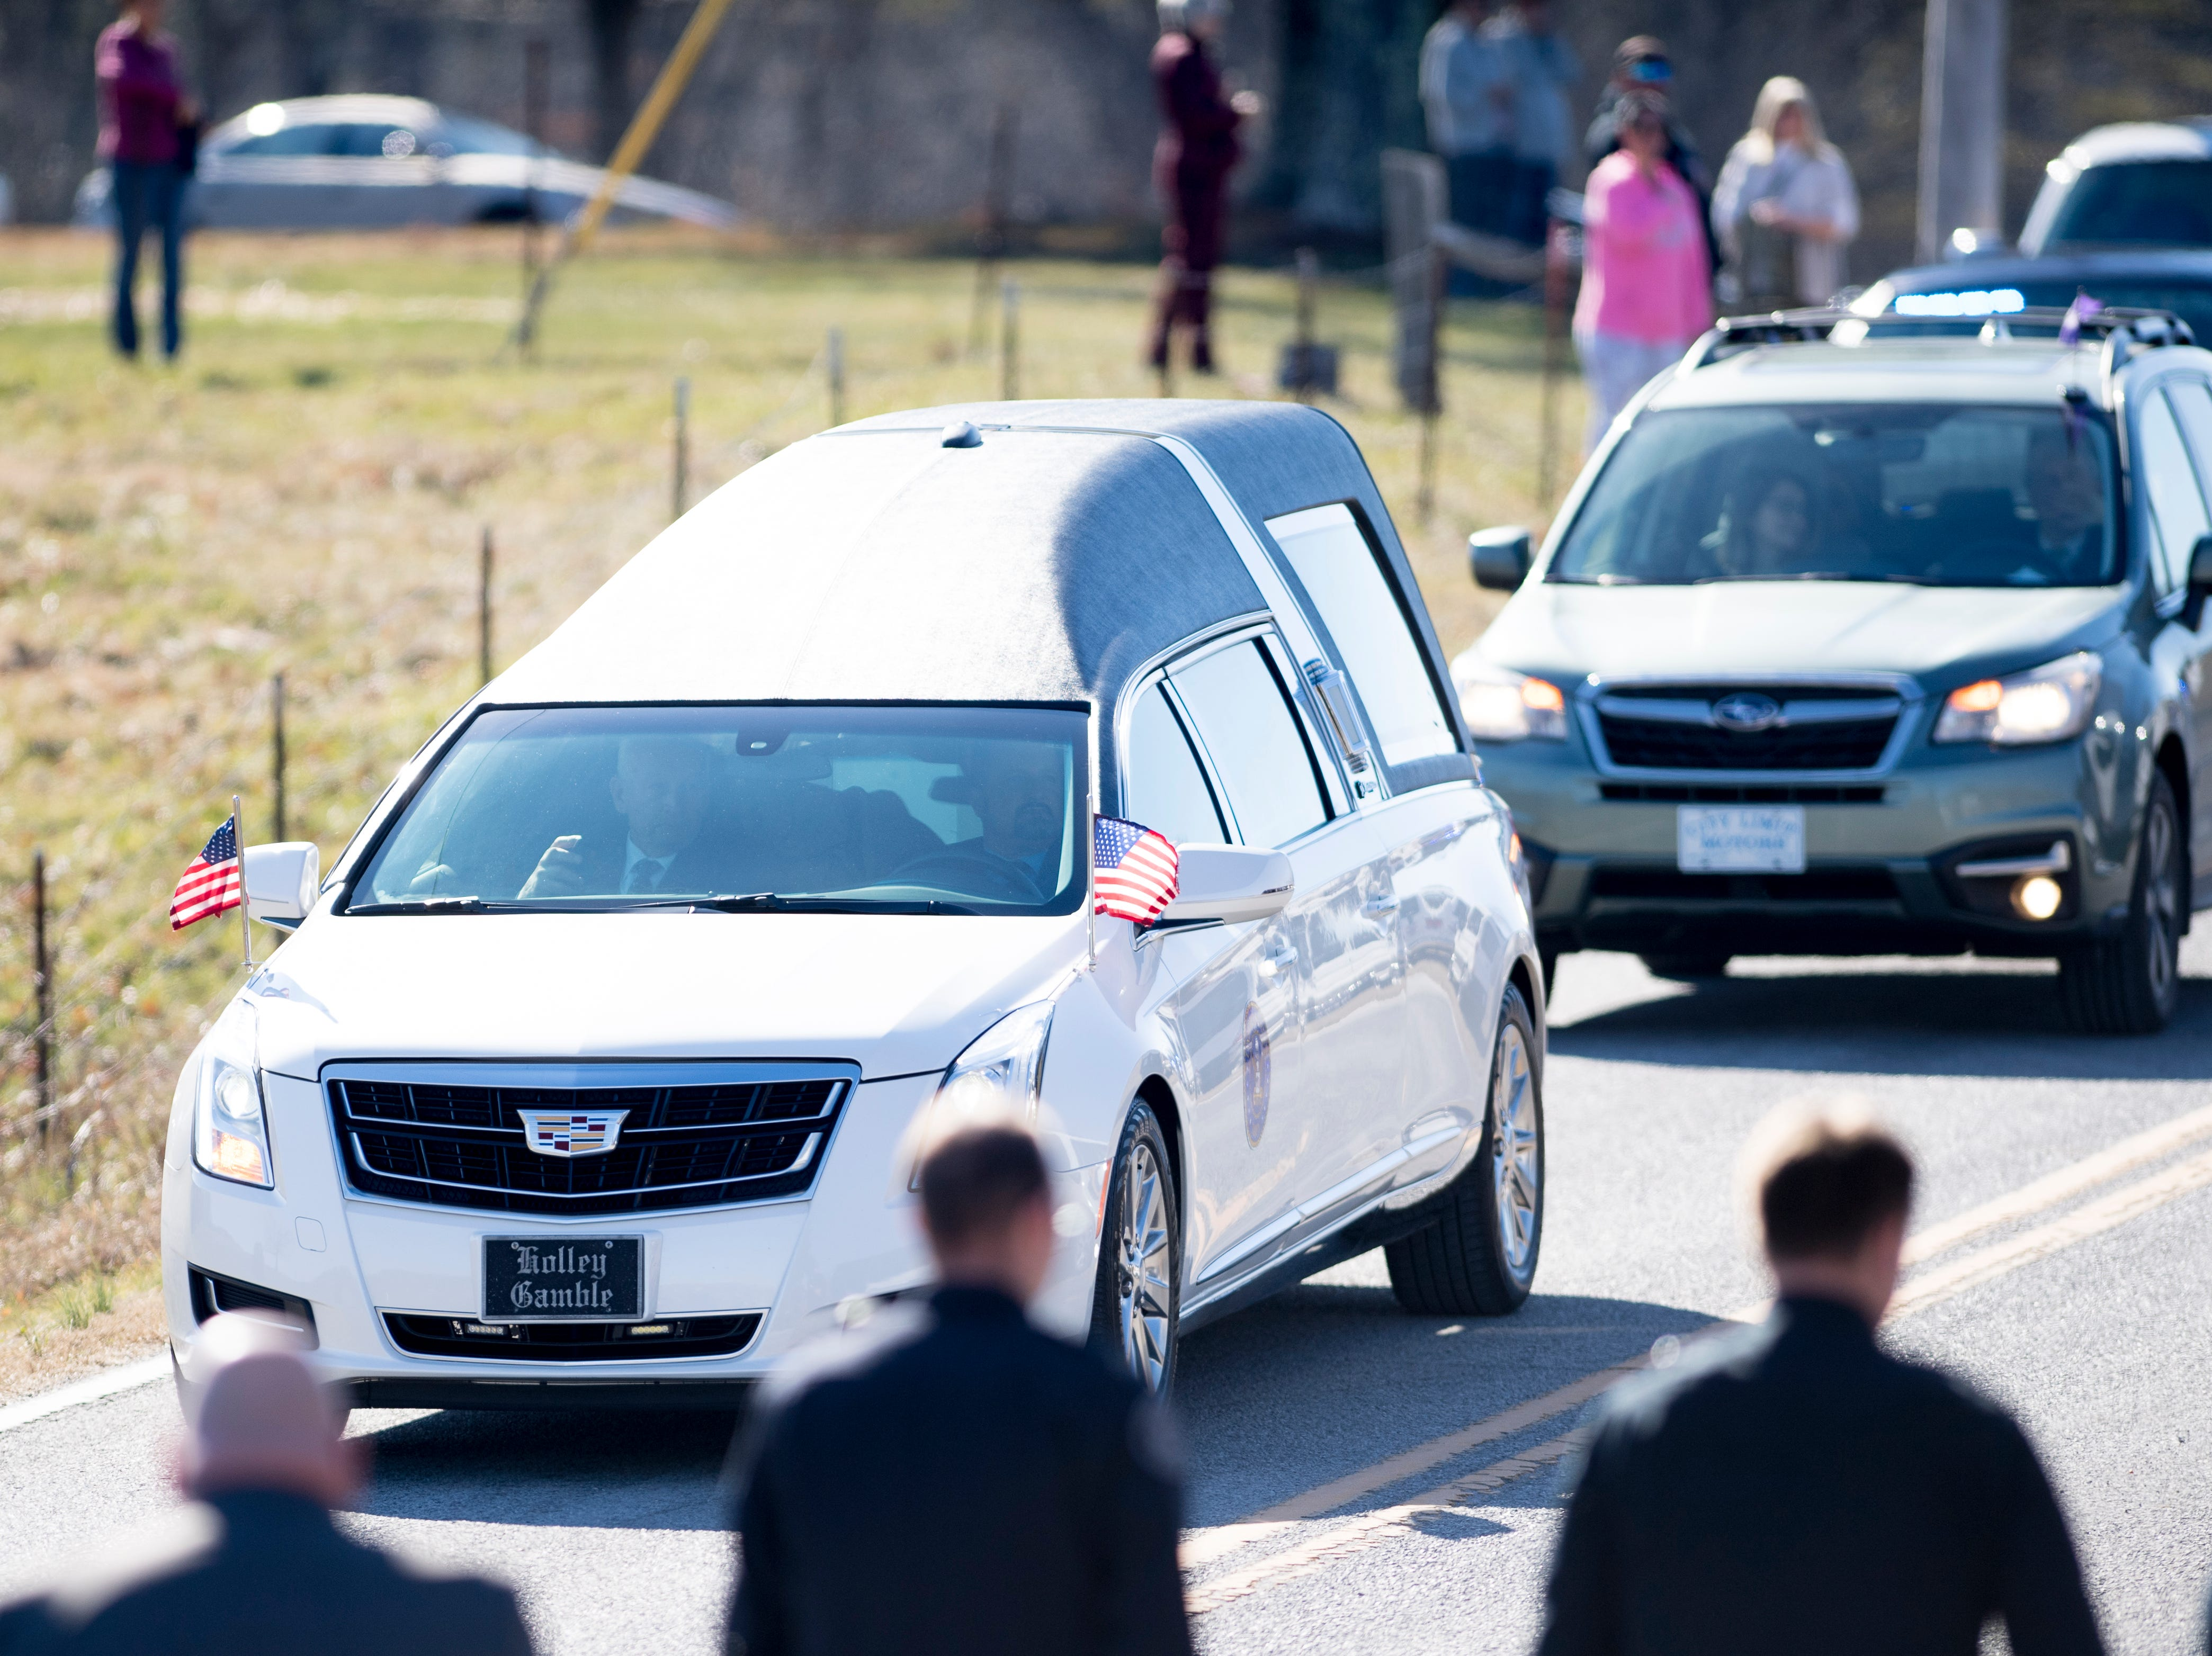 The hearse carrying Rosemary Mariner, the US Navy's first female fighter pilot, arrives to a graveside service at New Loyston Cemetery in Maynardville, Tennessee on Saturday, February 2, 2019. Mariner died January 24th of cancer.